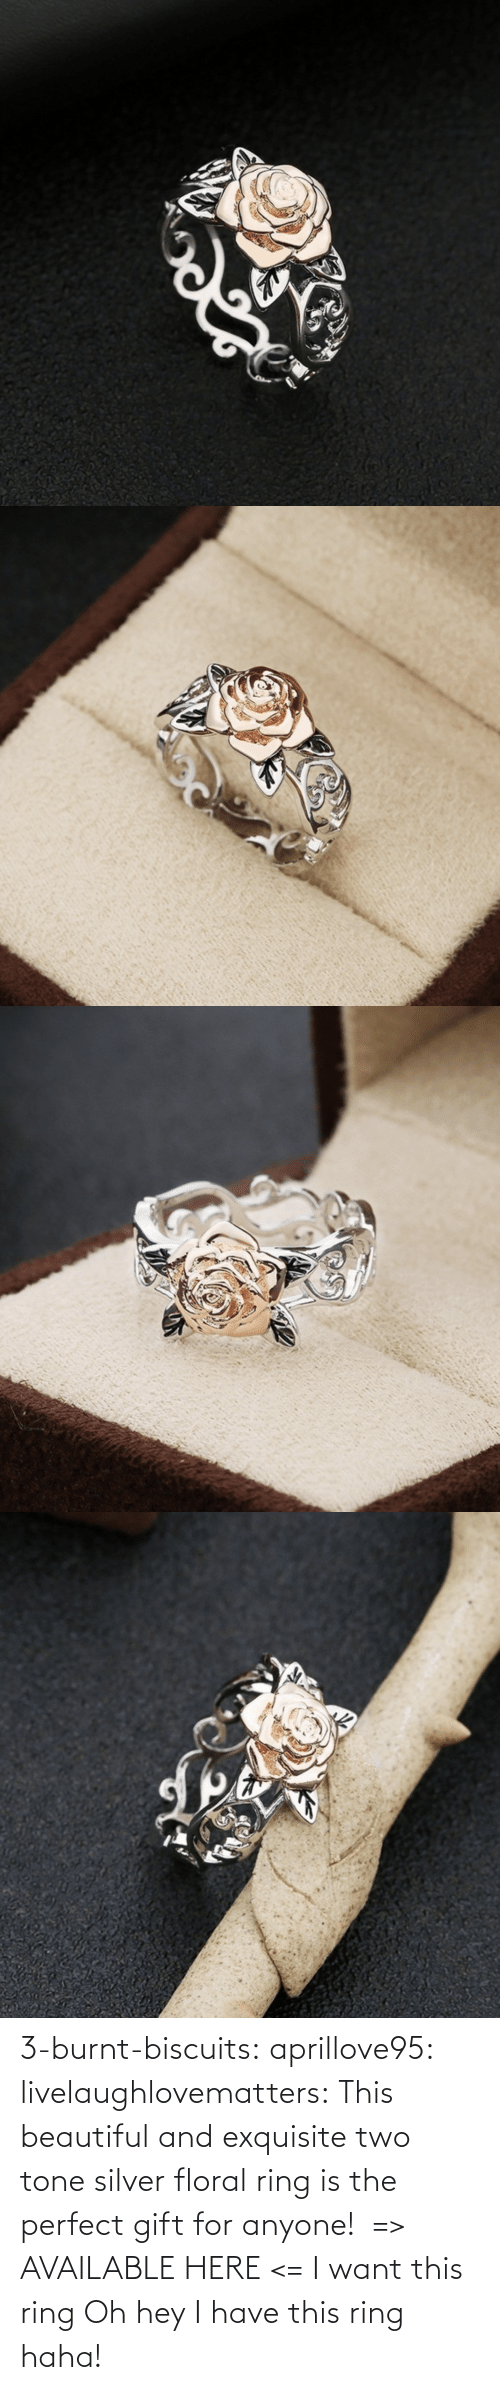 i want this: 3-burnt-biscuits: aprillove95:  livelaughlovematters:  This beautiful and exquisite two tone silver floral ring is the perfect gift for anyone!  => AVAILABLE HERE <=    I want this ring     Oh hey I have this ring haha!